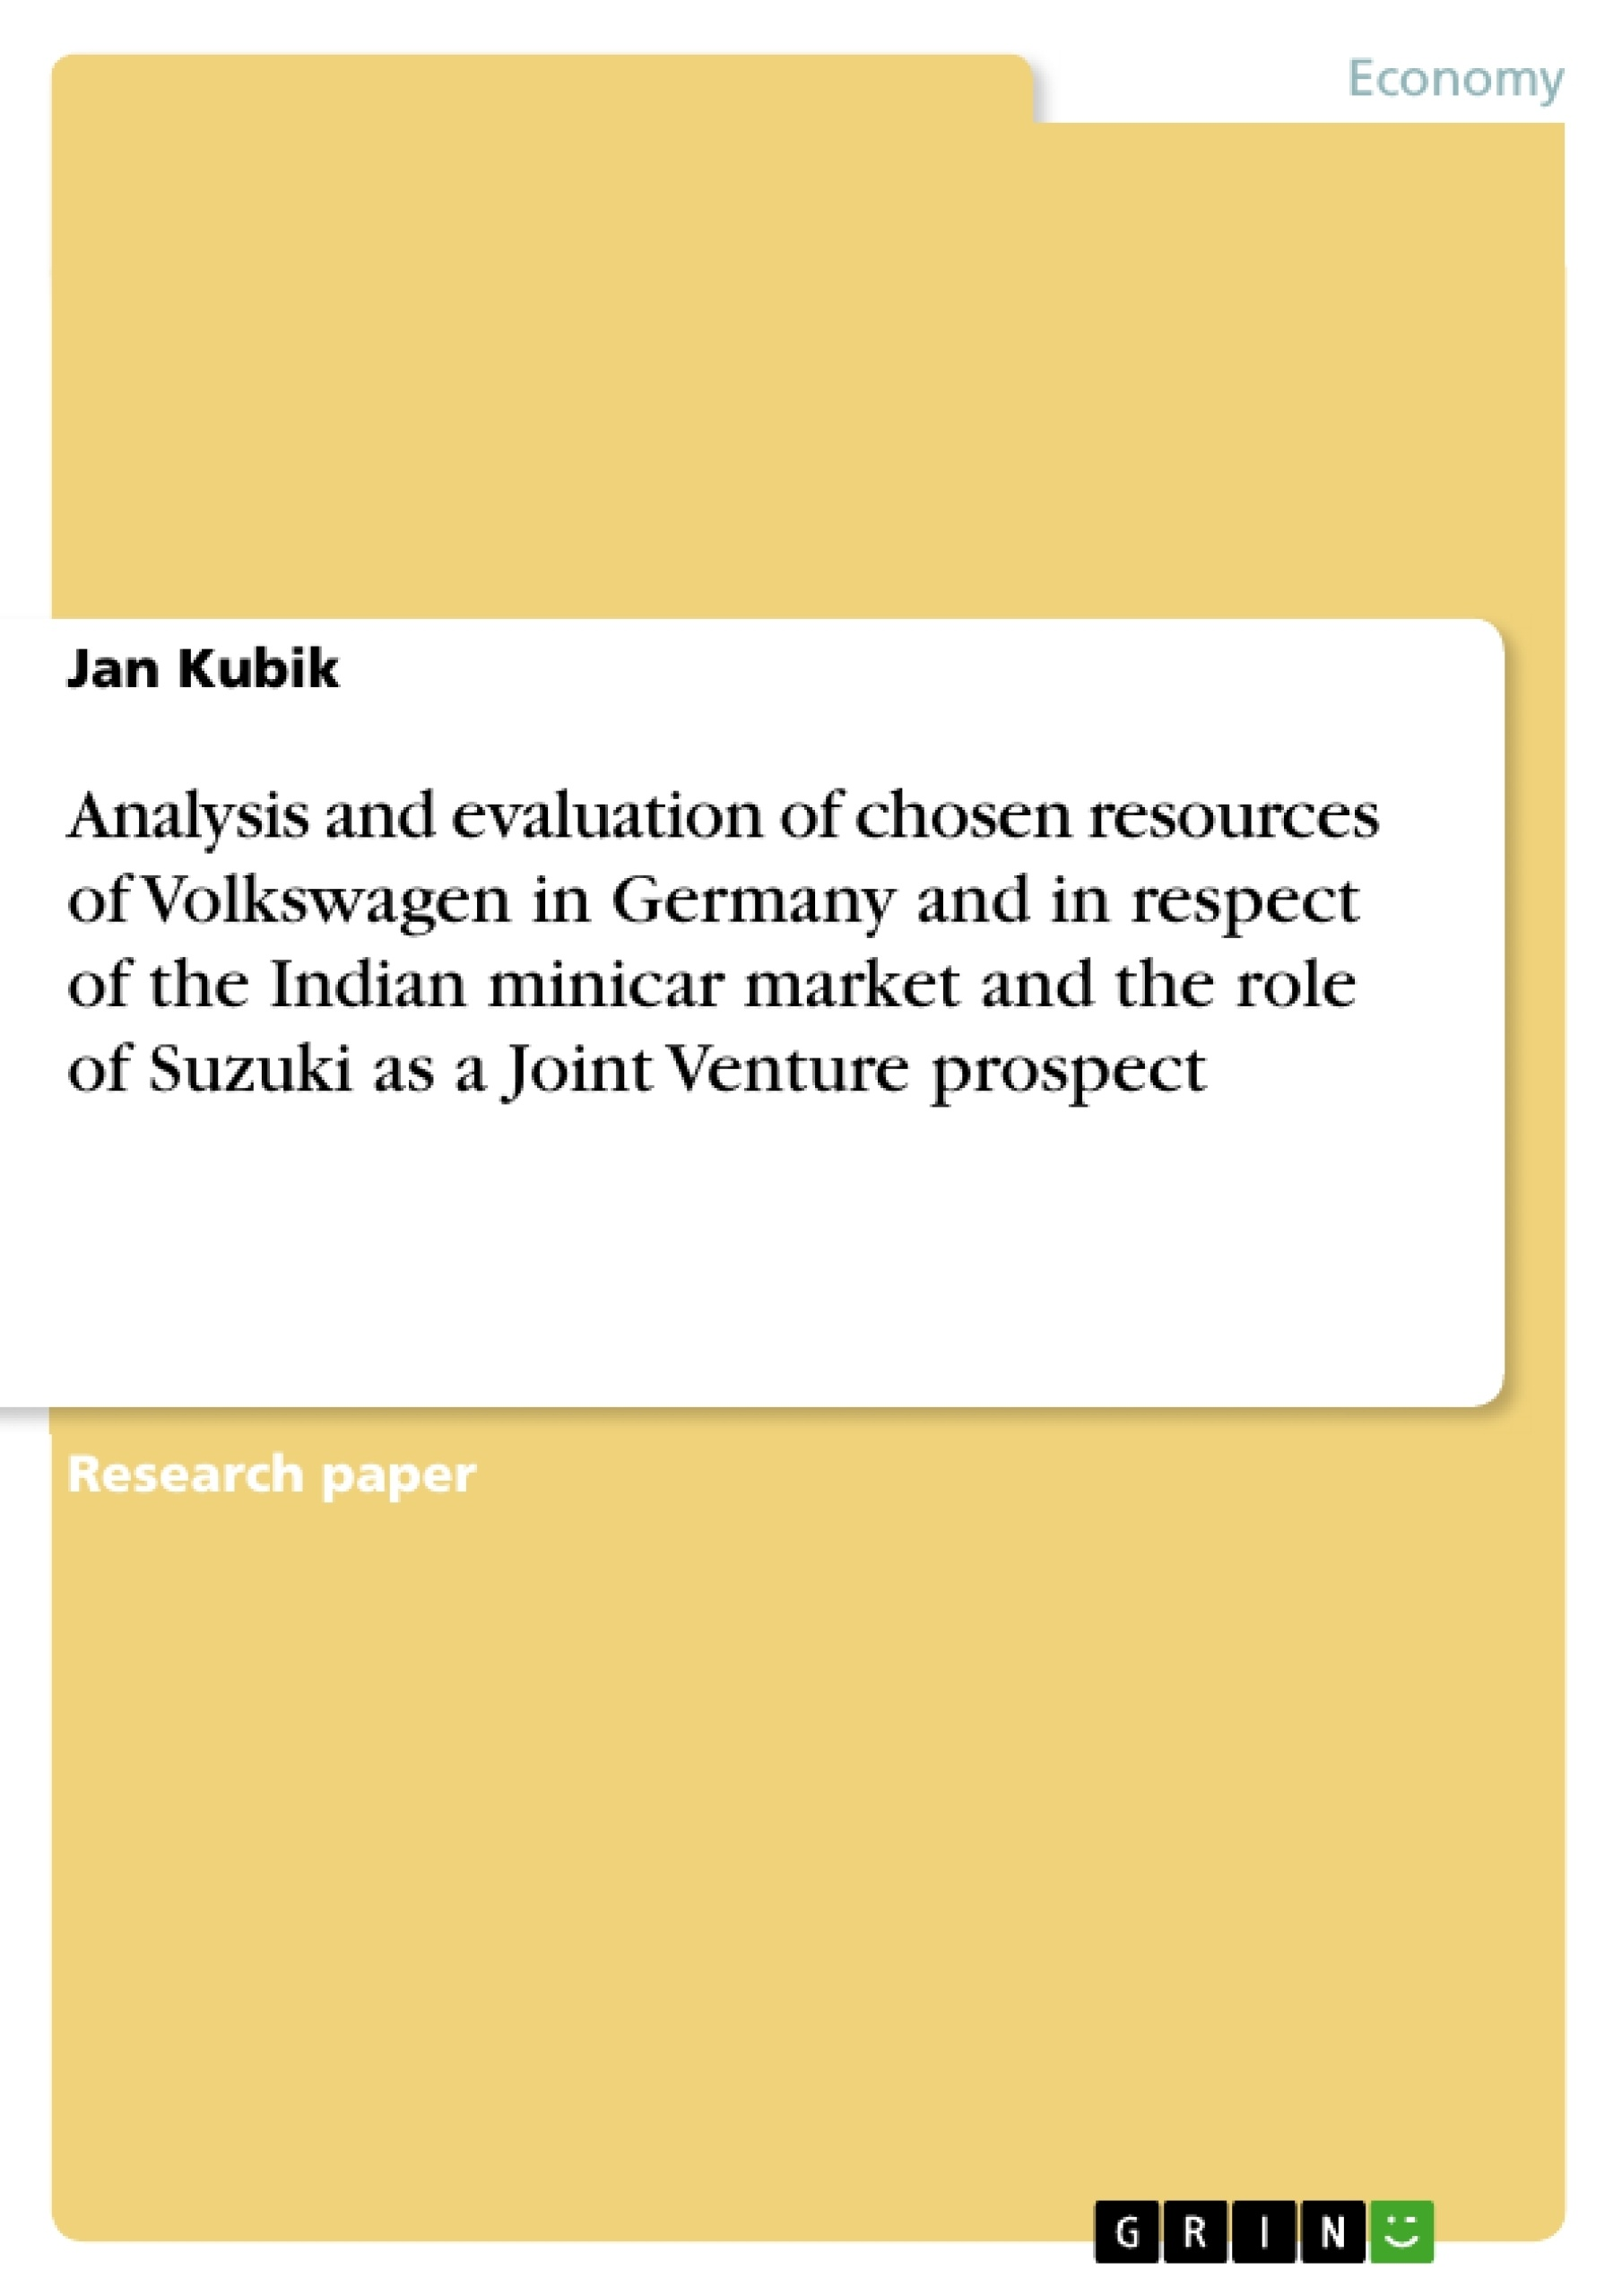 Title: Analysis and evaluation of chosen resources of Volkswagen in Germany and in respect of the Indian minicar market and the role of Suzuki as a Joint Venture prospect